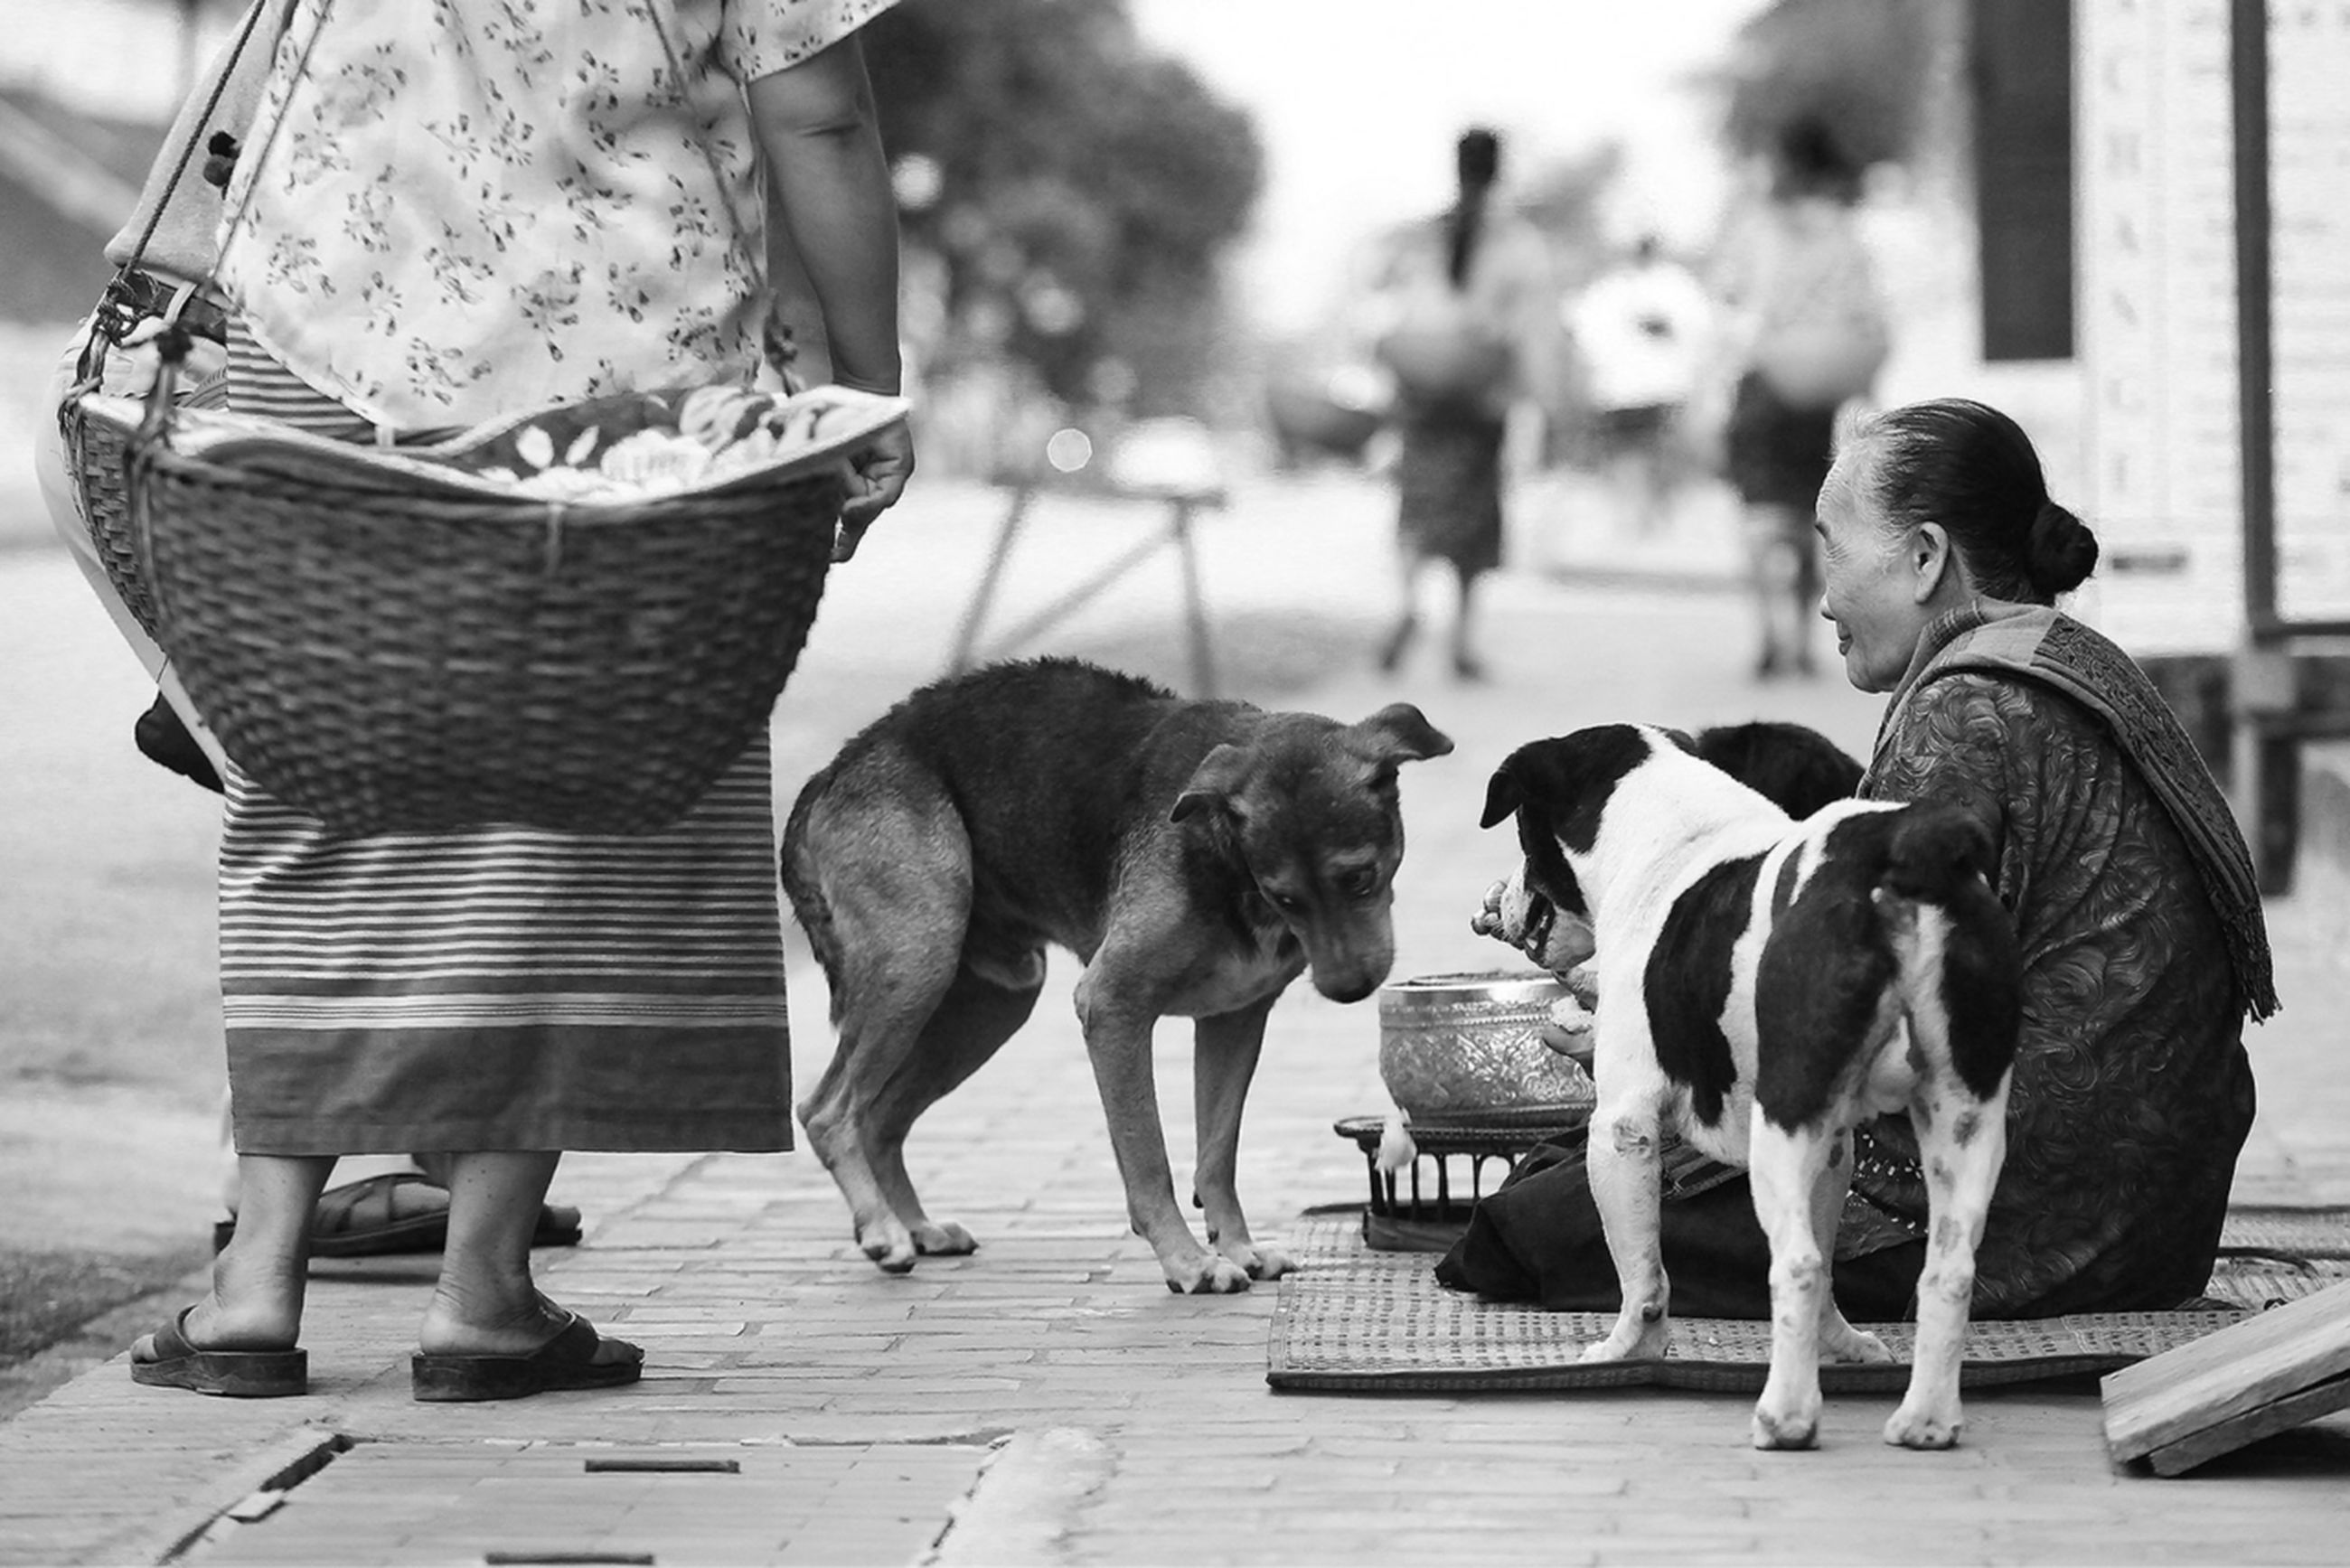 animal themes, domestic animals, mammal, one animal, dog, pets, livestock, full length, focus on foreground, two animals, rear view, person, men, walking, lifestyles, standing, street, togetherness, horse